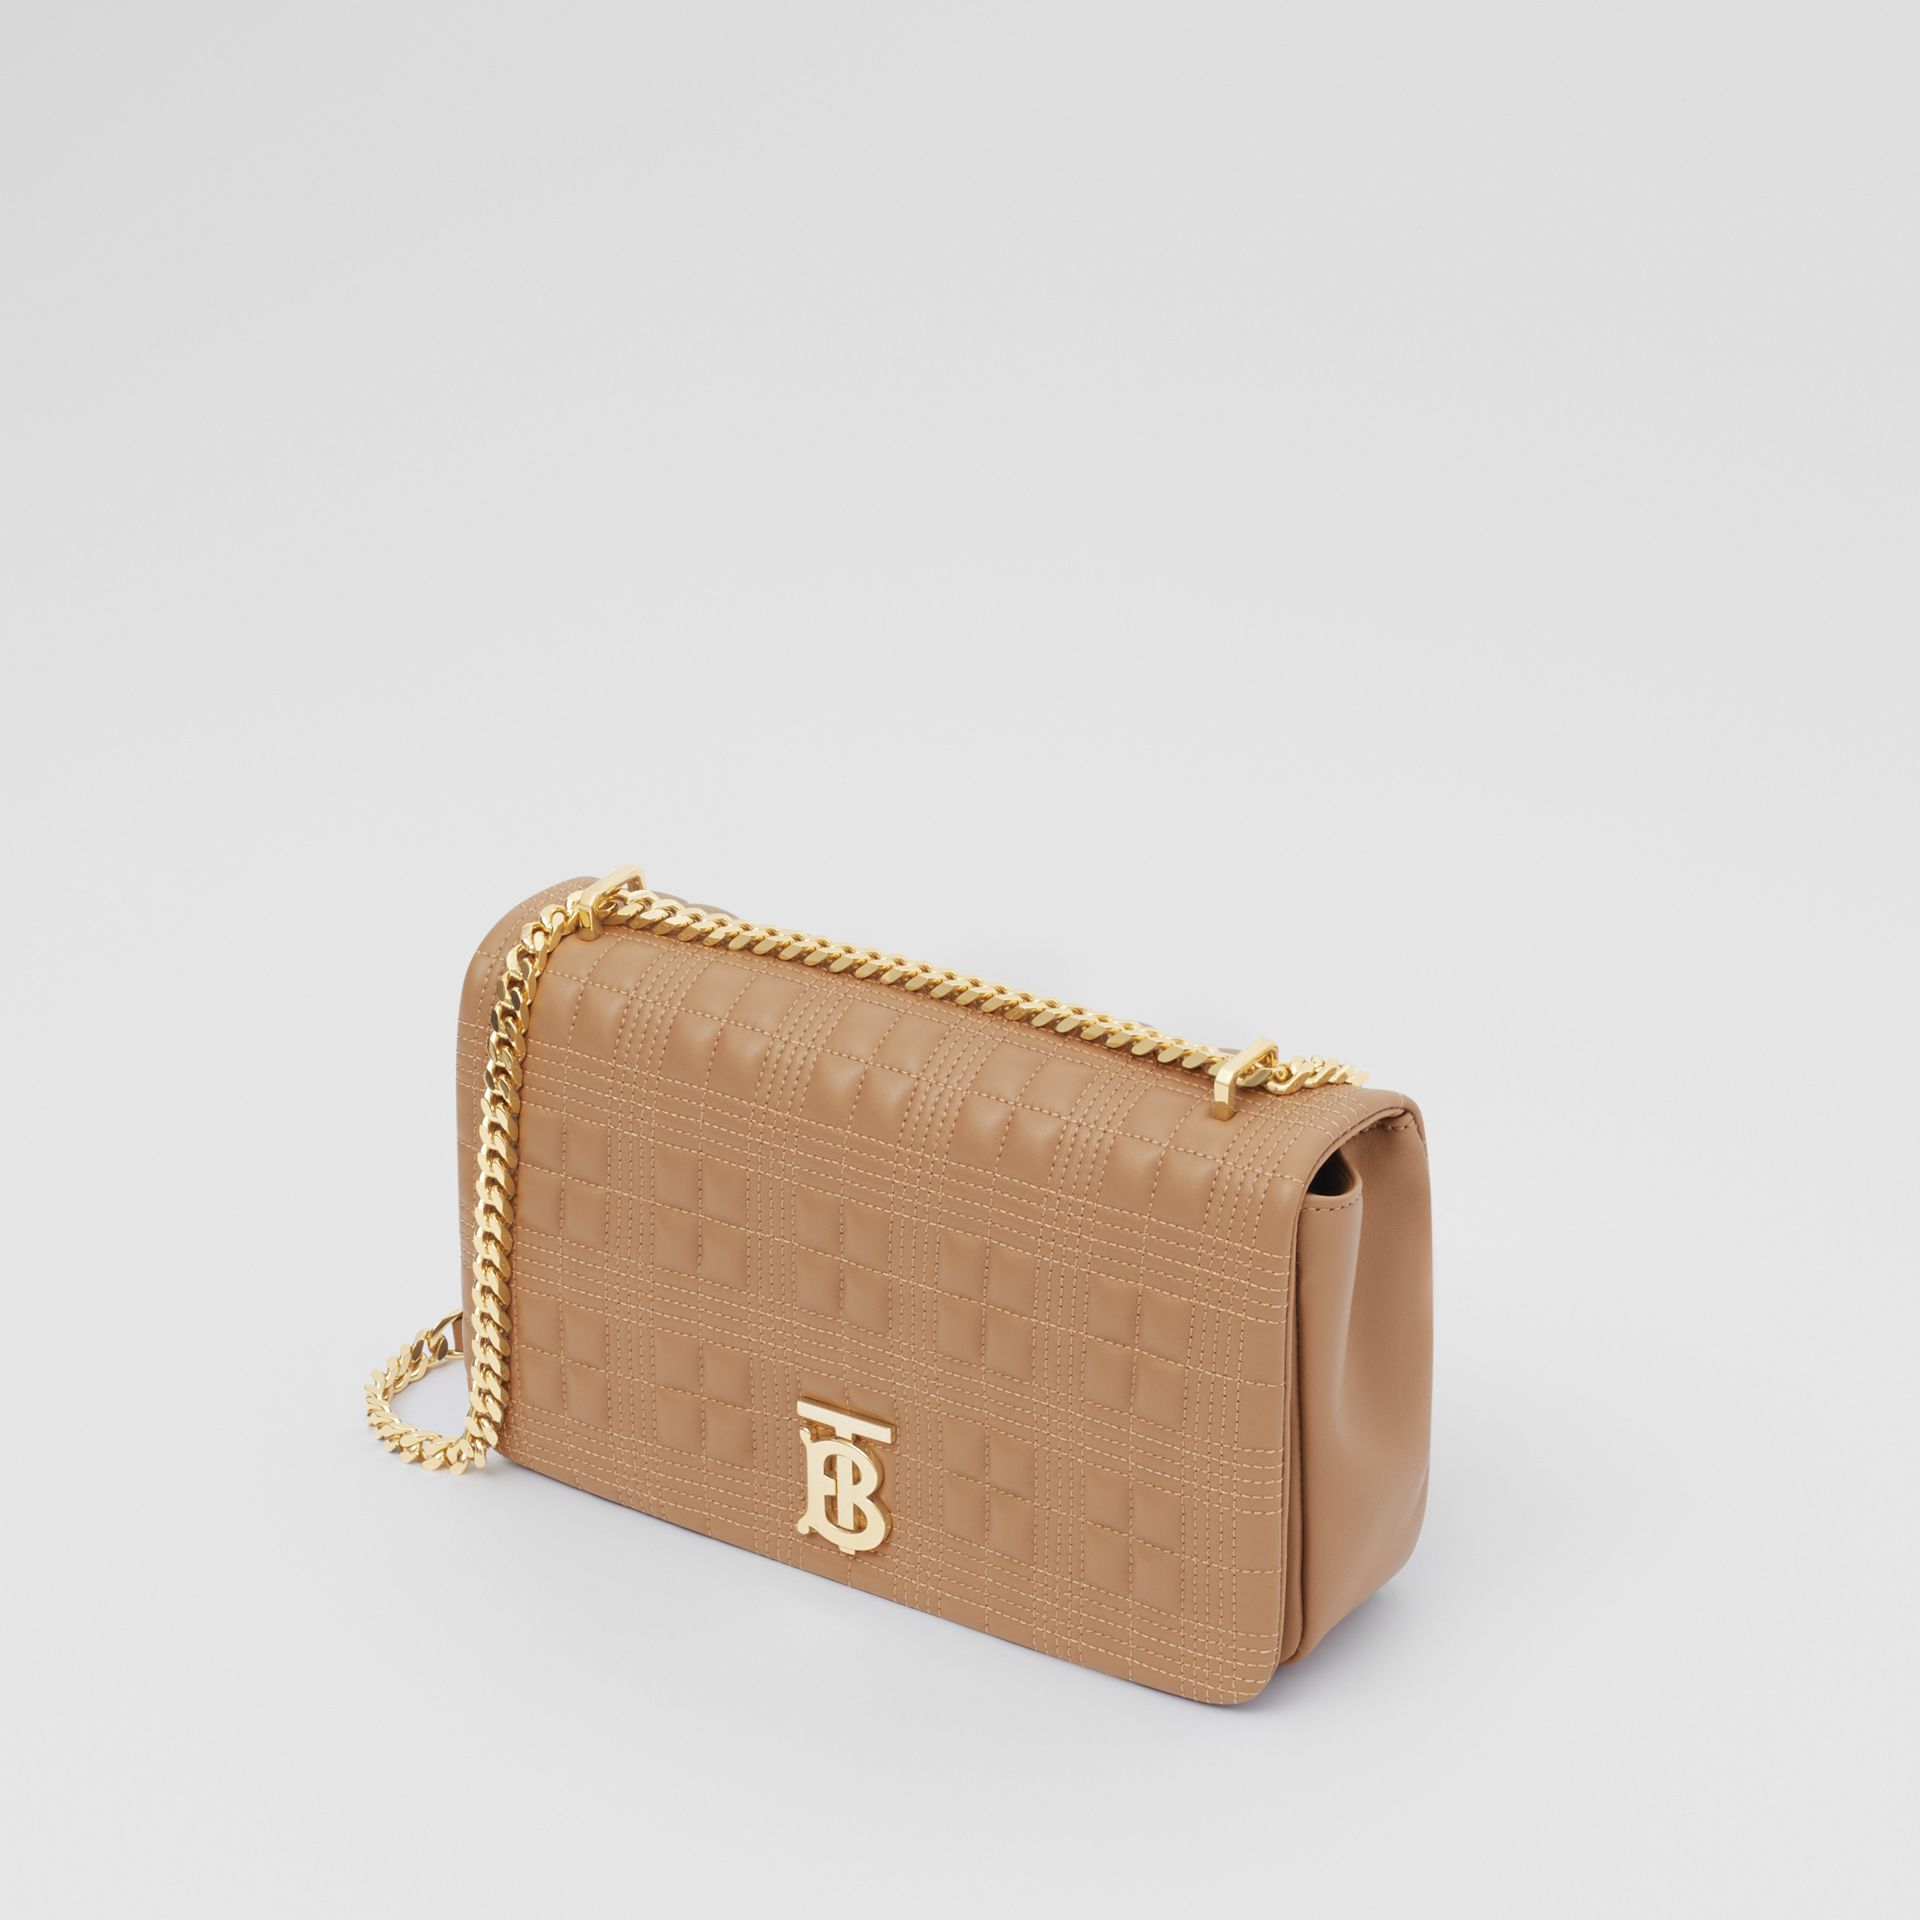 Medium Quilted Lambskin Lola Bag in Camel/light Gold - Women | Burberry - gallery image 5